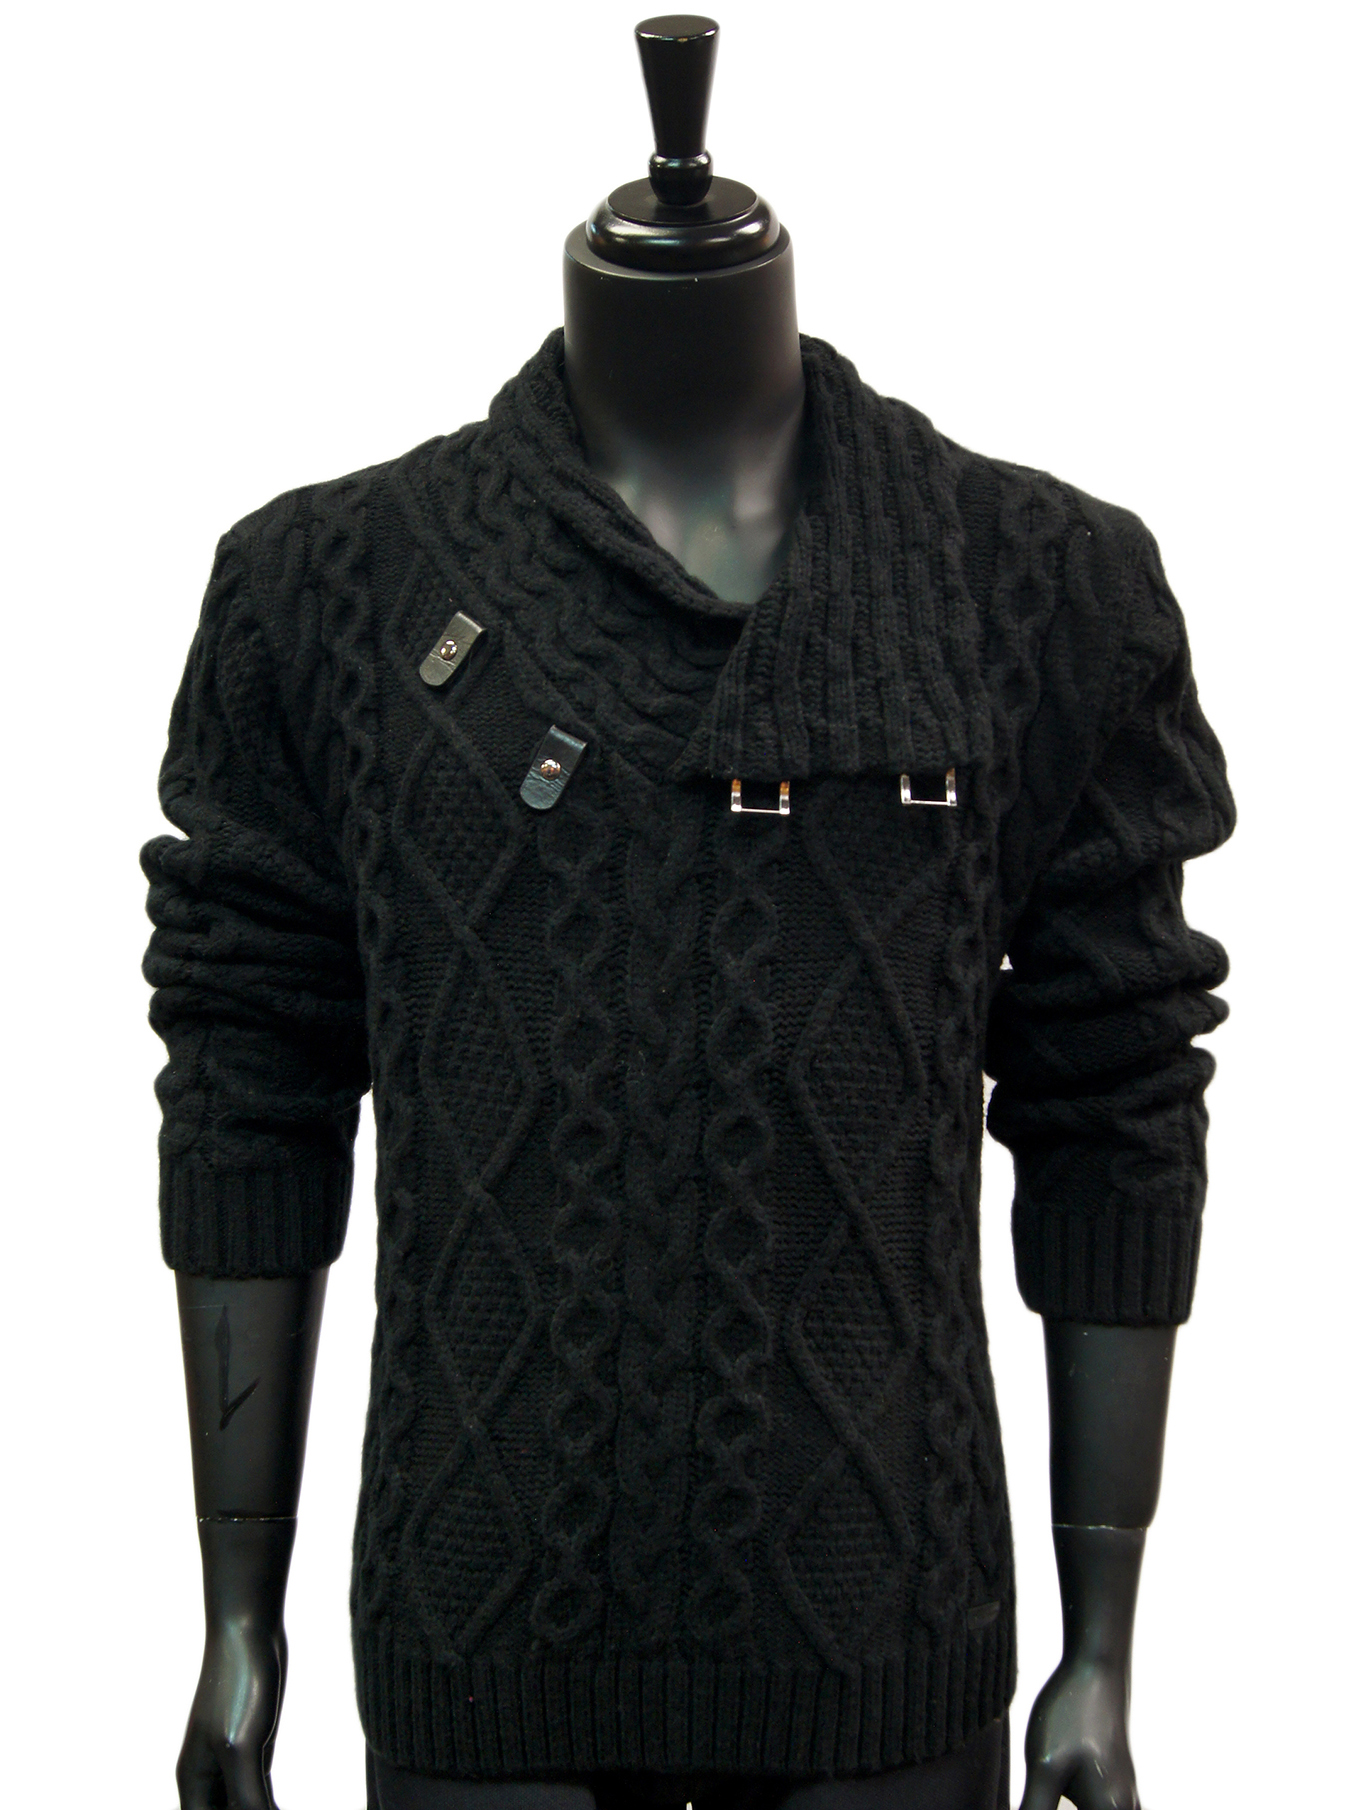 2f74fc3ee55f Mens Black Cable Knit Leather Toggle High Collar Stylish Luxury Pullover  Sweater. 100% Satisfaction ...